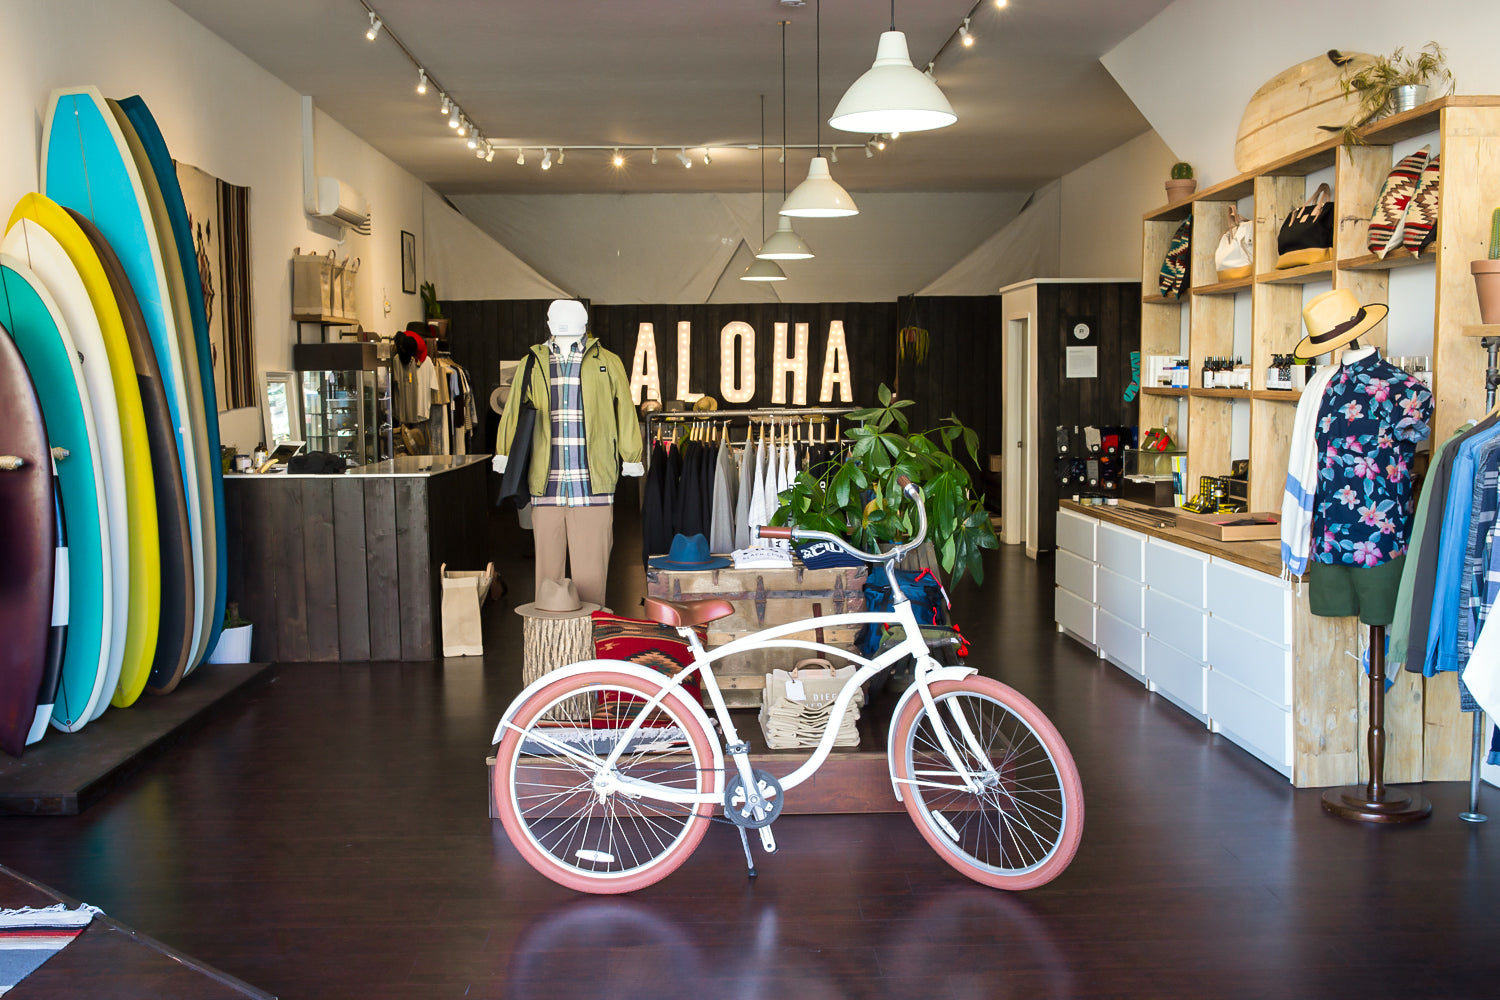 Aloha Beach Club x Priority Bicycles Coast Cruiser